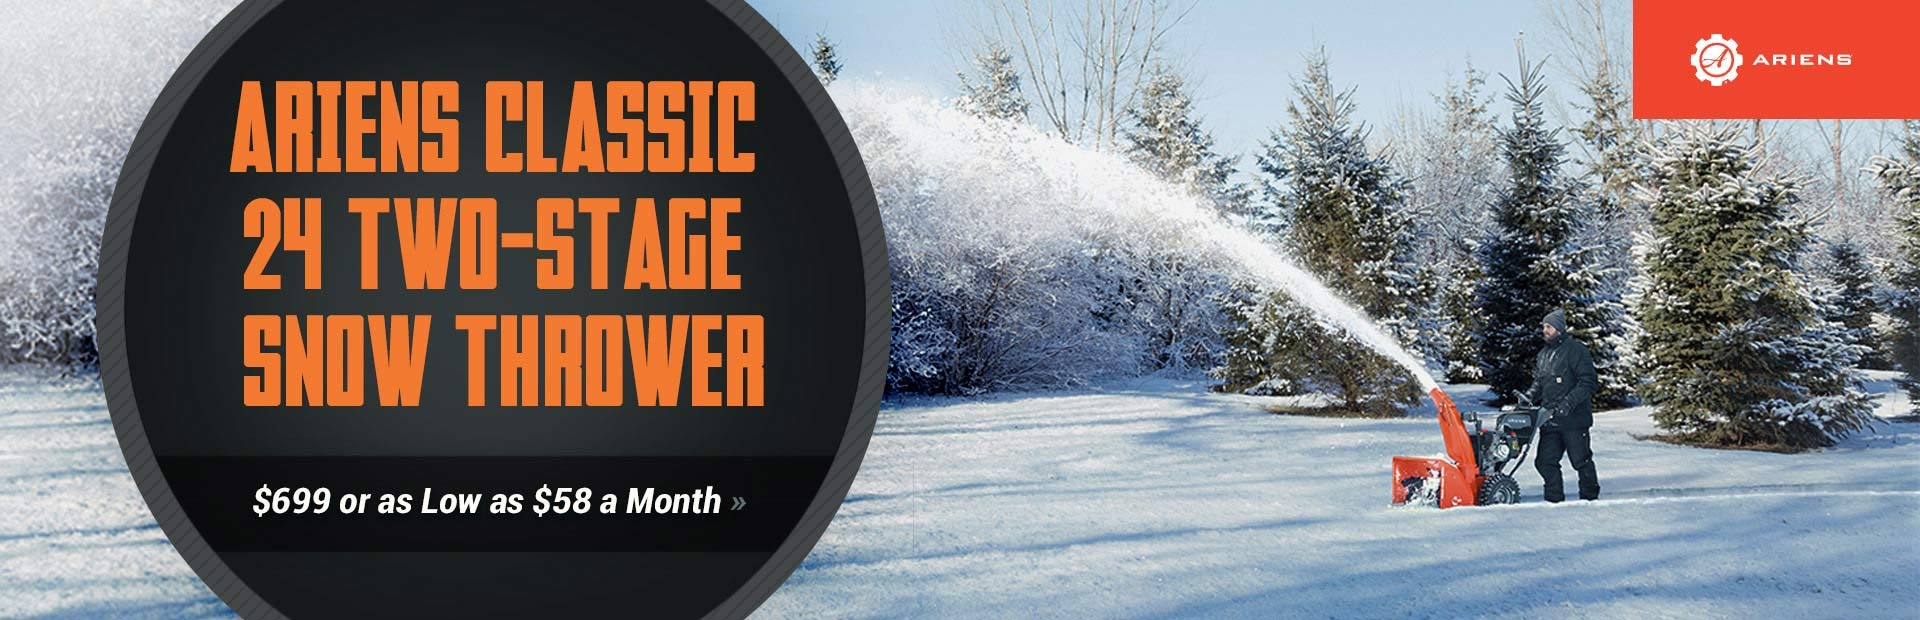 Ariens Classic 24 Two-Stage Snow Thrower: Get yours for $699 or as low as $58 a month!